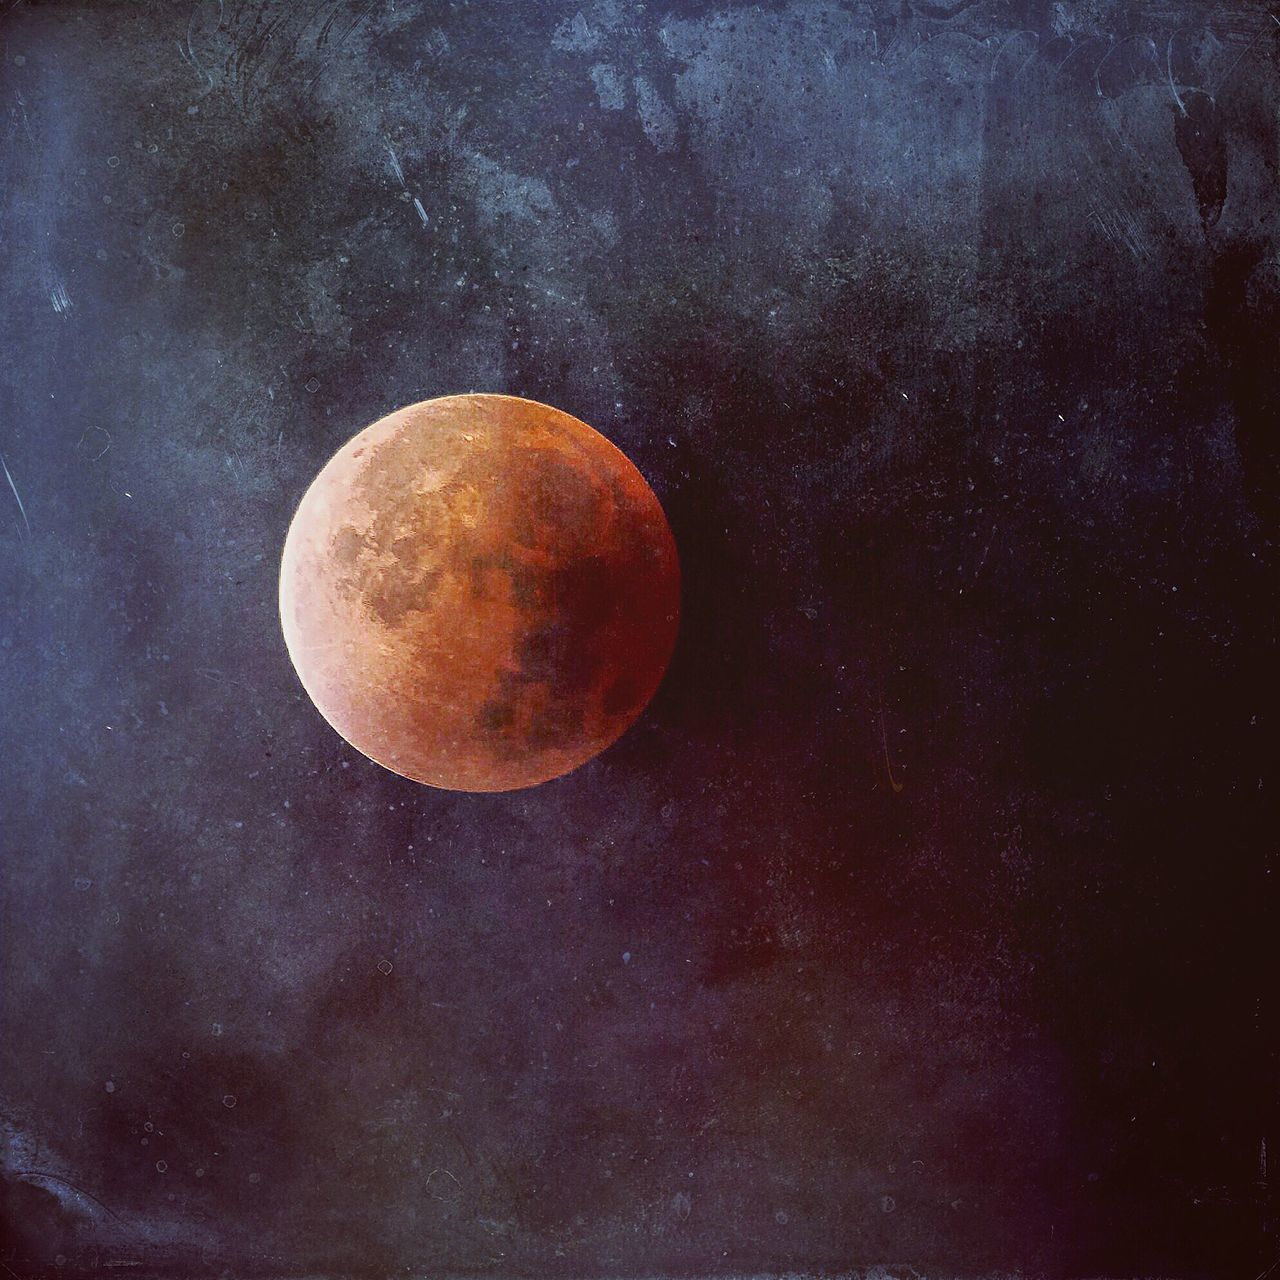 Luna | Happy weekend folks :) Moon Mextures Nature's Diversities Fineart Fine Art Photography Luna Moonporn MoonScape The Great Outdoors - 2016 EyeEm Awards Night Sky Night Photography Nightshot Moonlight Craters Moon Eclipse Eclipse